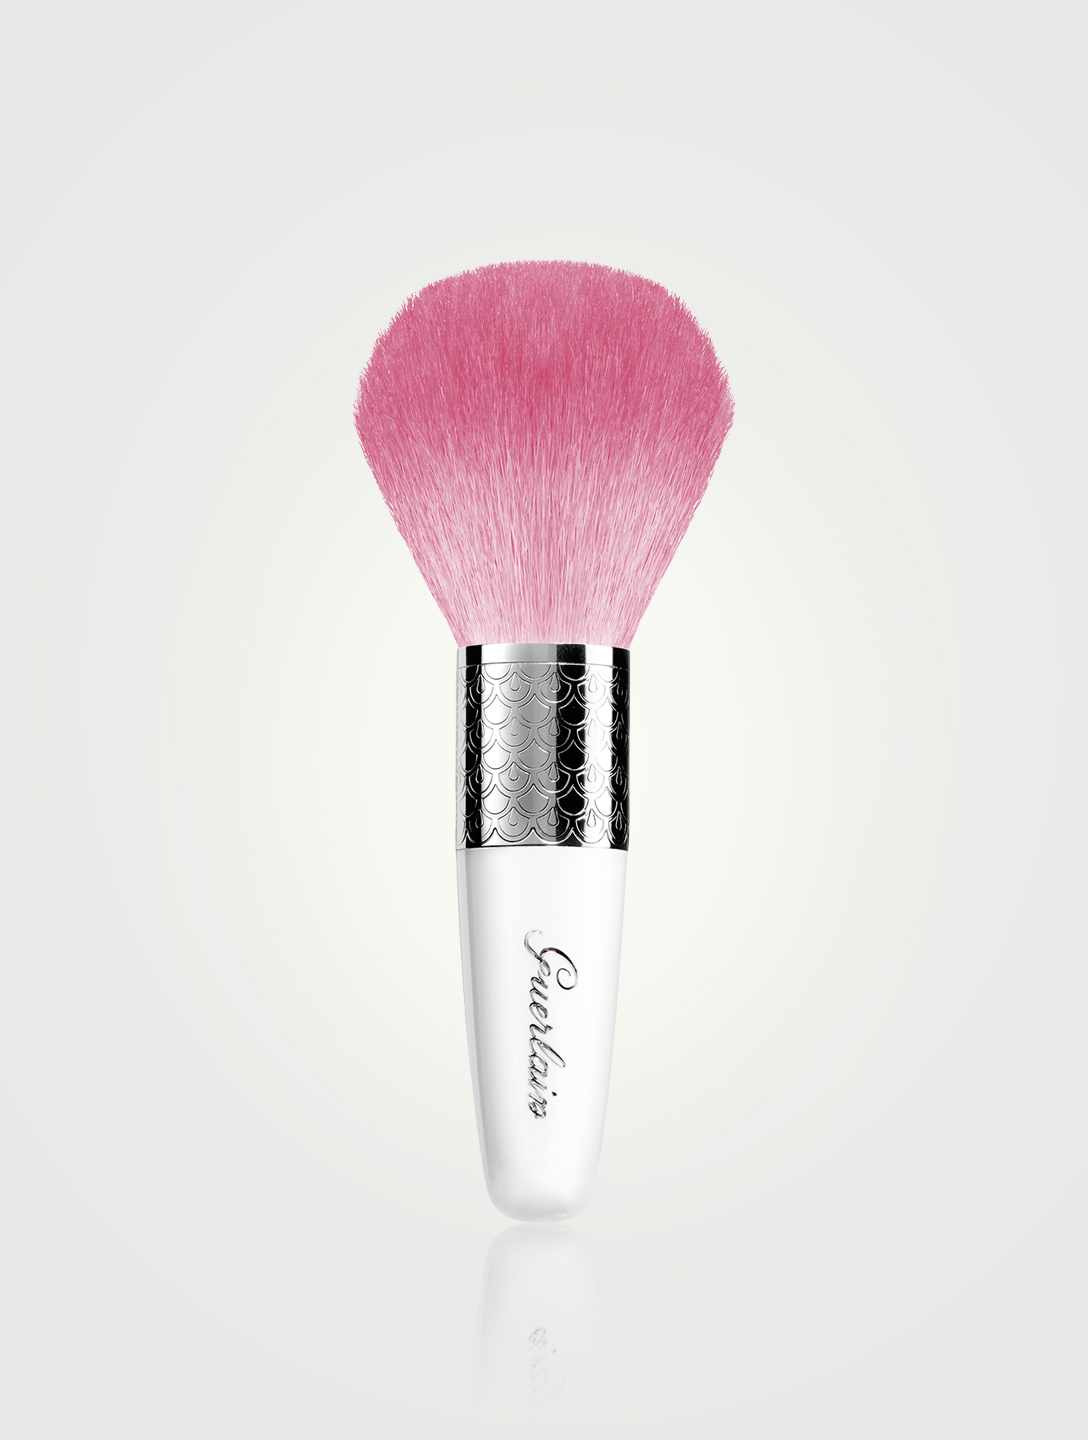 GUERLAIN Météorites Powder Brush Beauty